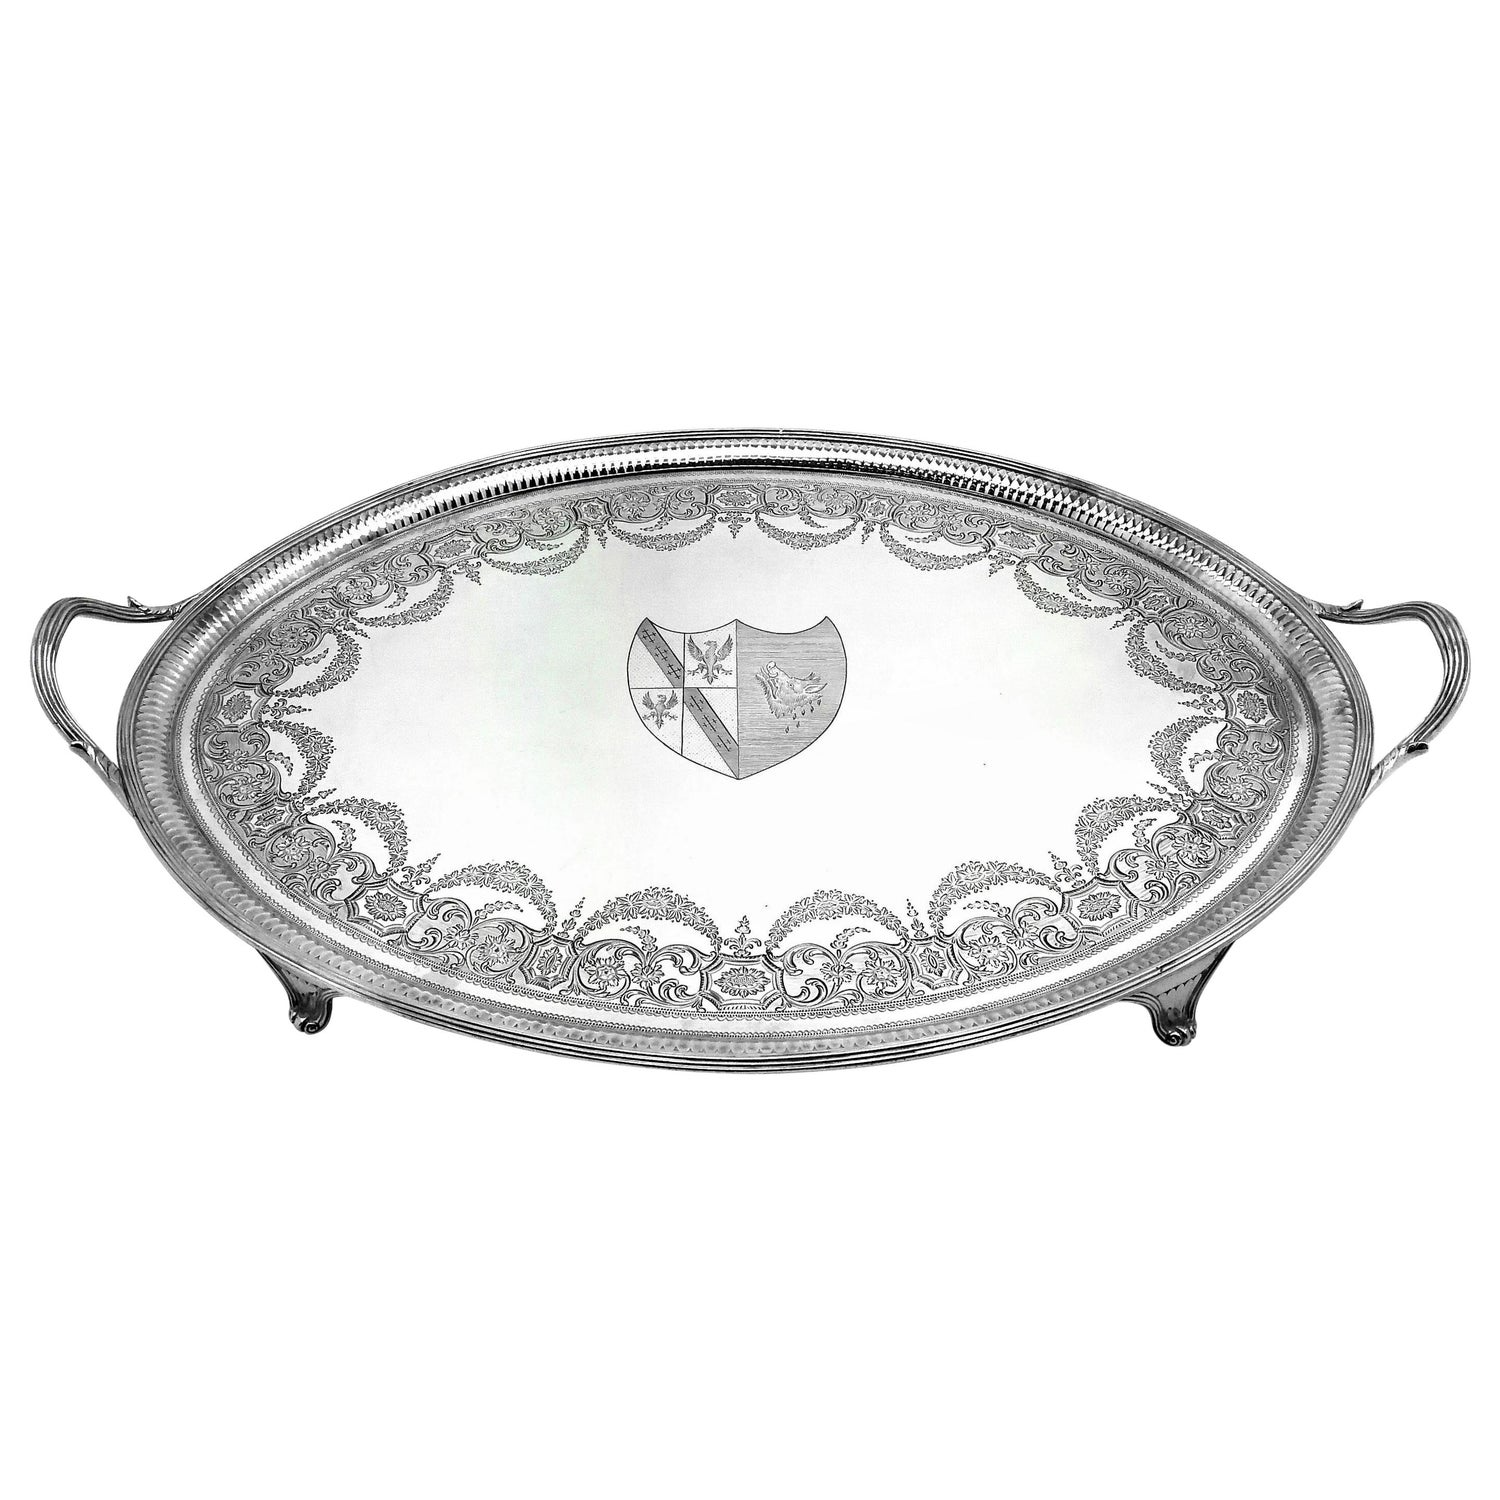 Antique Georgian George III Sterling Silver Tea Tray / Oval Serving Tray, 1788